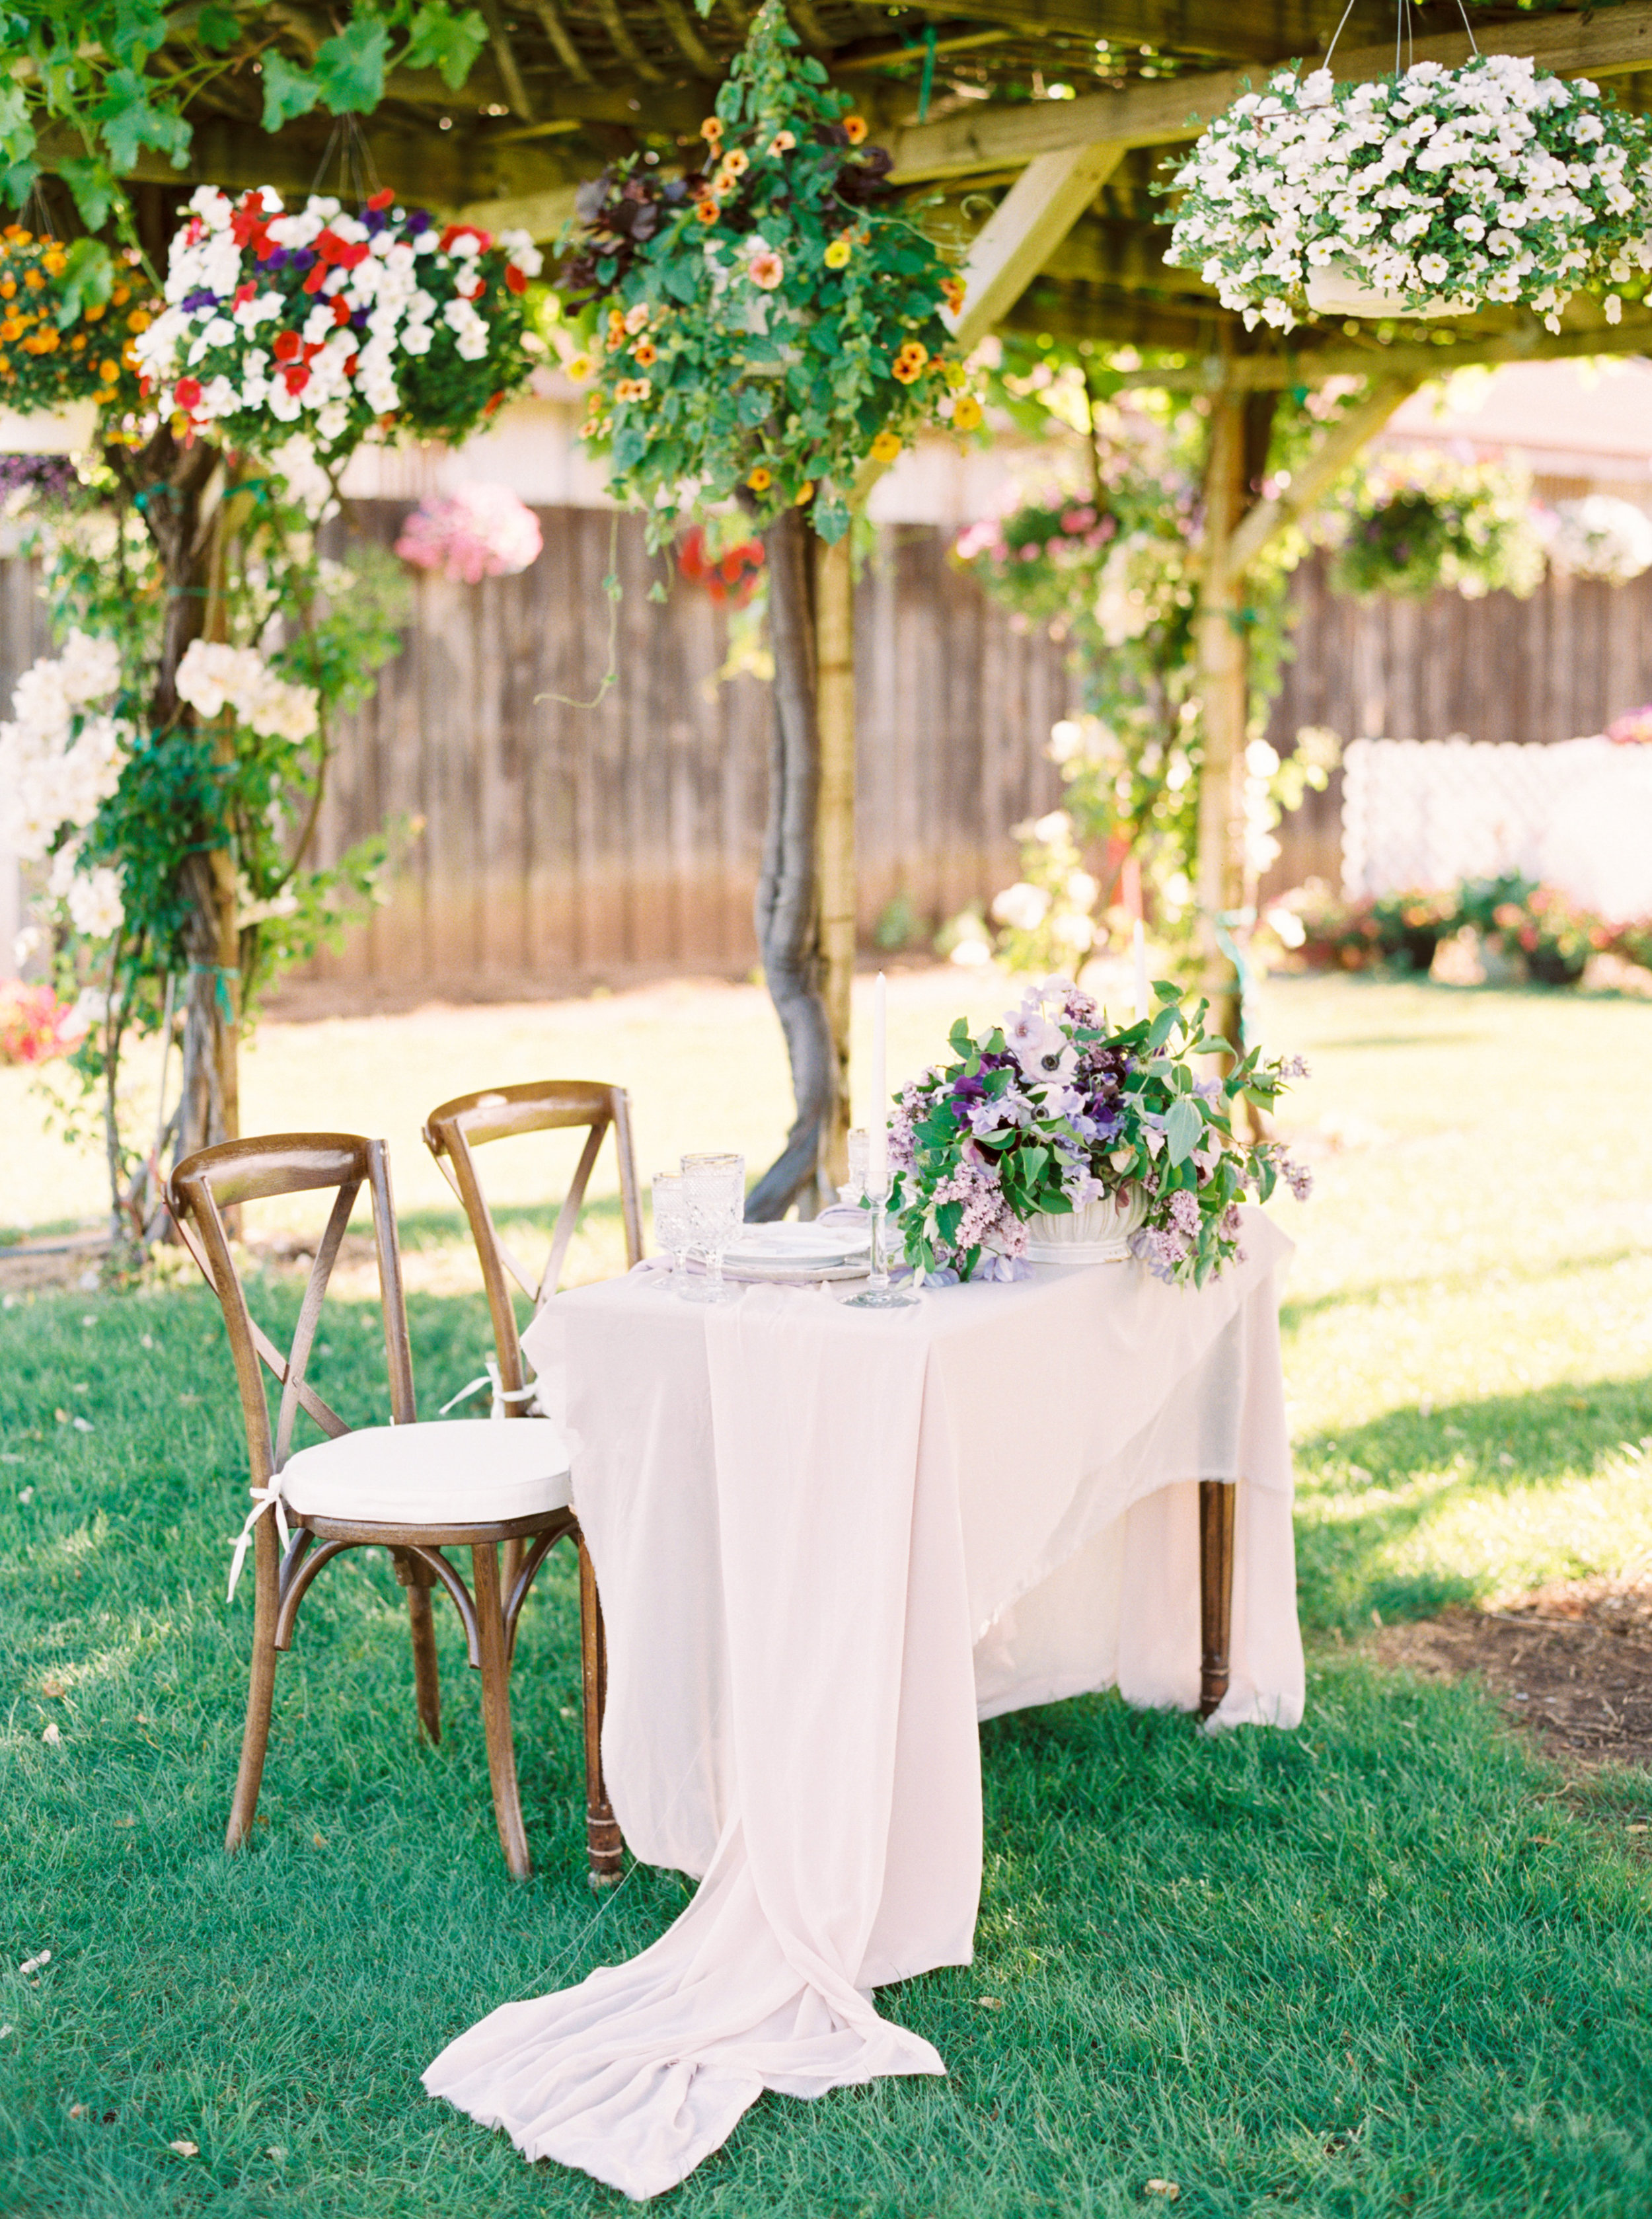 This-Love-of-Yours-Kirigin-Cellars-Flower-Arch-Styled-Shoot-138.jpg